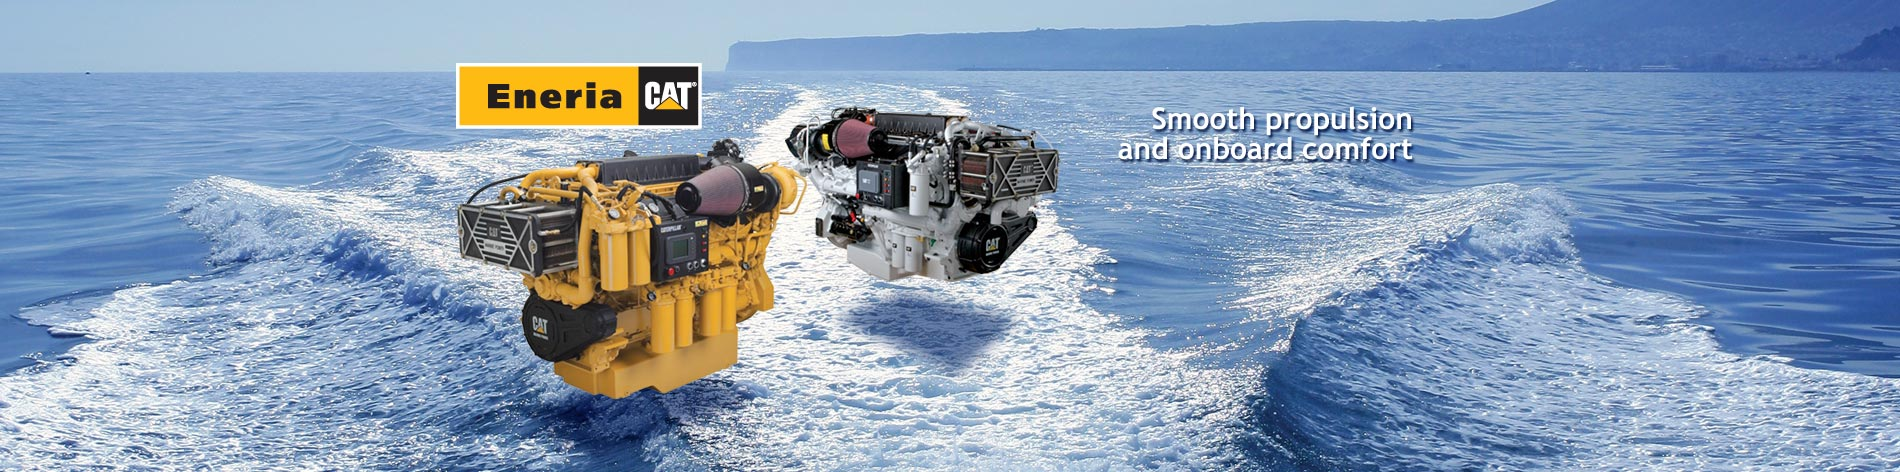 With a wide range of Caterpillar marine diesel engines, we offer the best technology, and provide the solution best suited to your project as well as impeccable post-sales service.